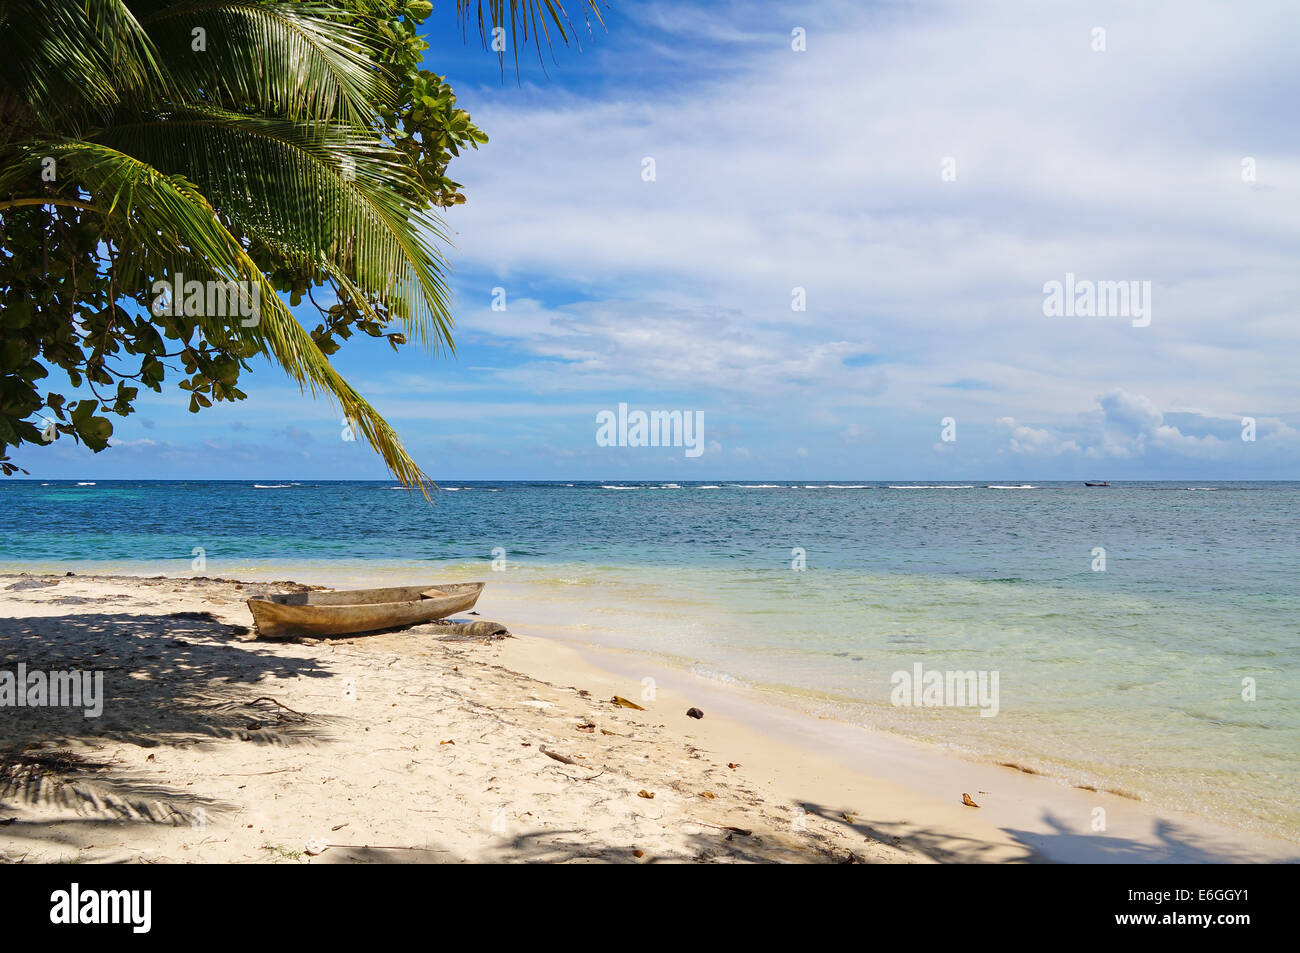 tropical beach of an Caribbean island with a dugout canoe on the sand, Zapatilla cays, Panama - Stock Image